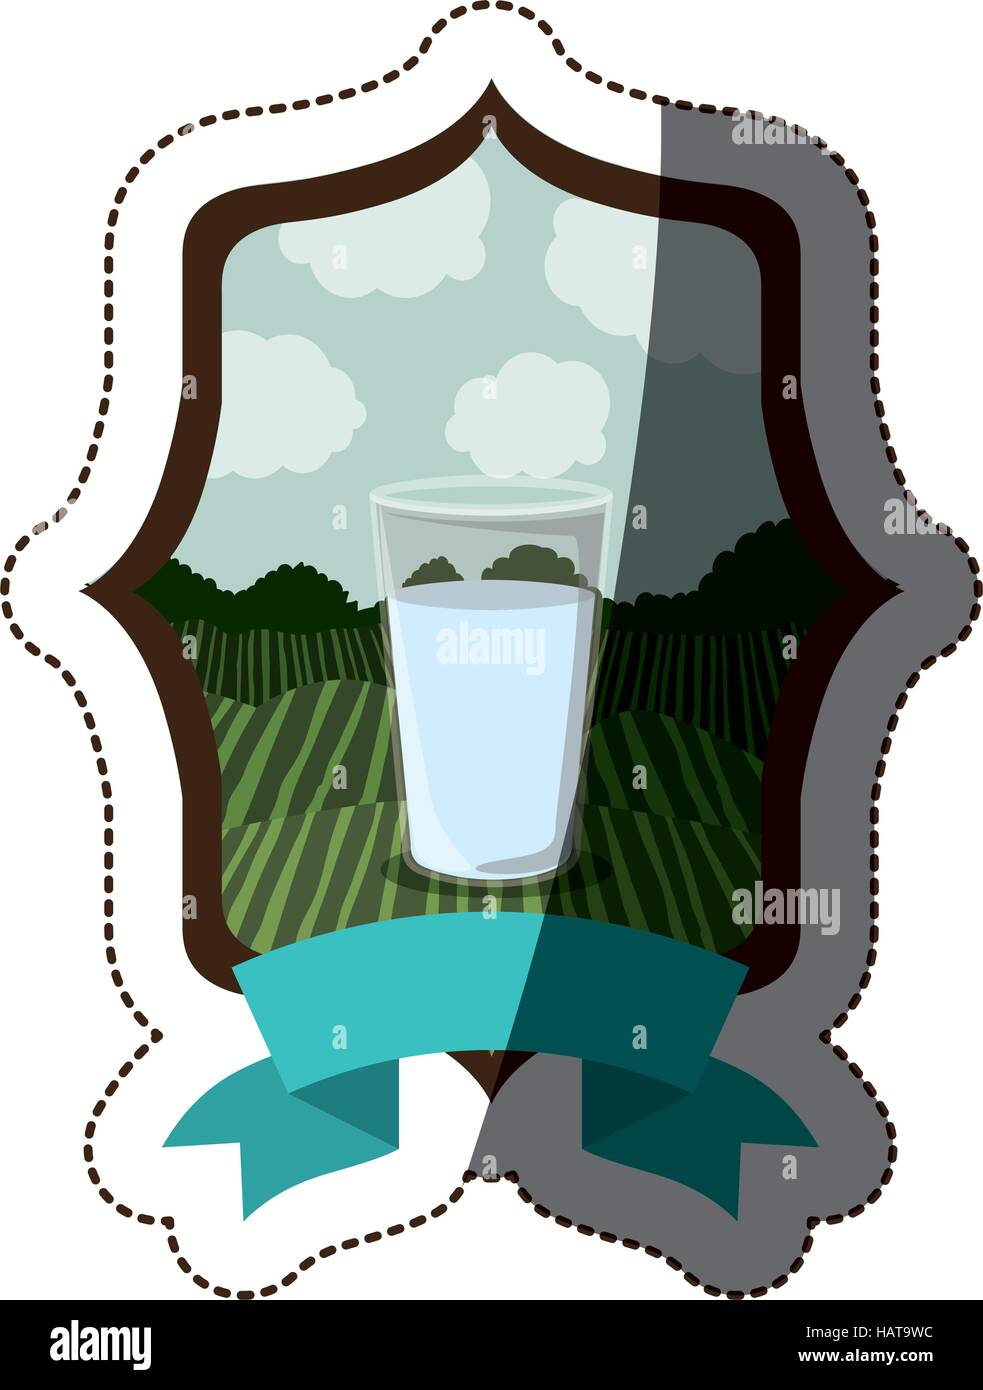 Glass icon. Machine tool instrument farm and agriculture theme. Isolated design. Vector illustration - Stock Vector